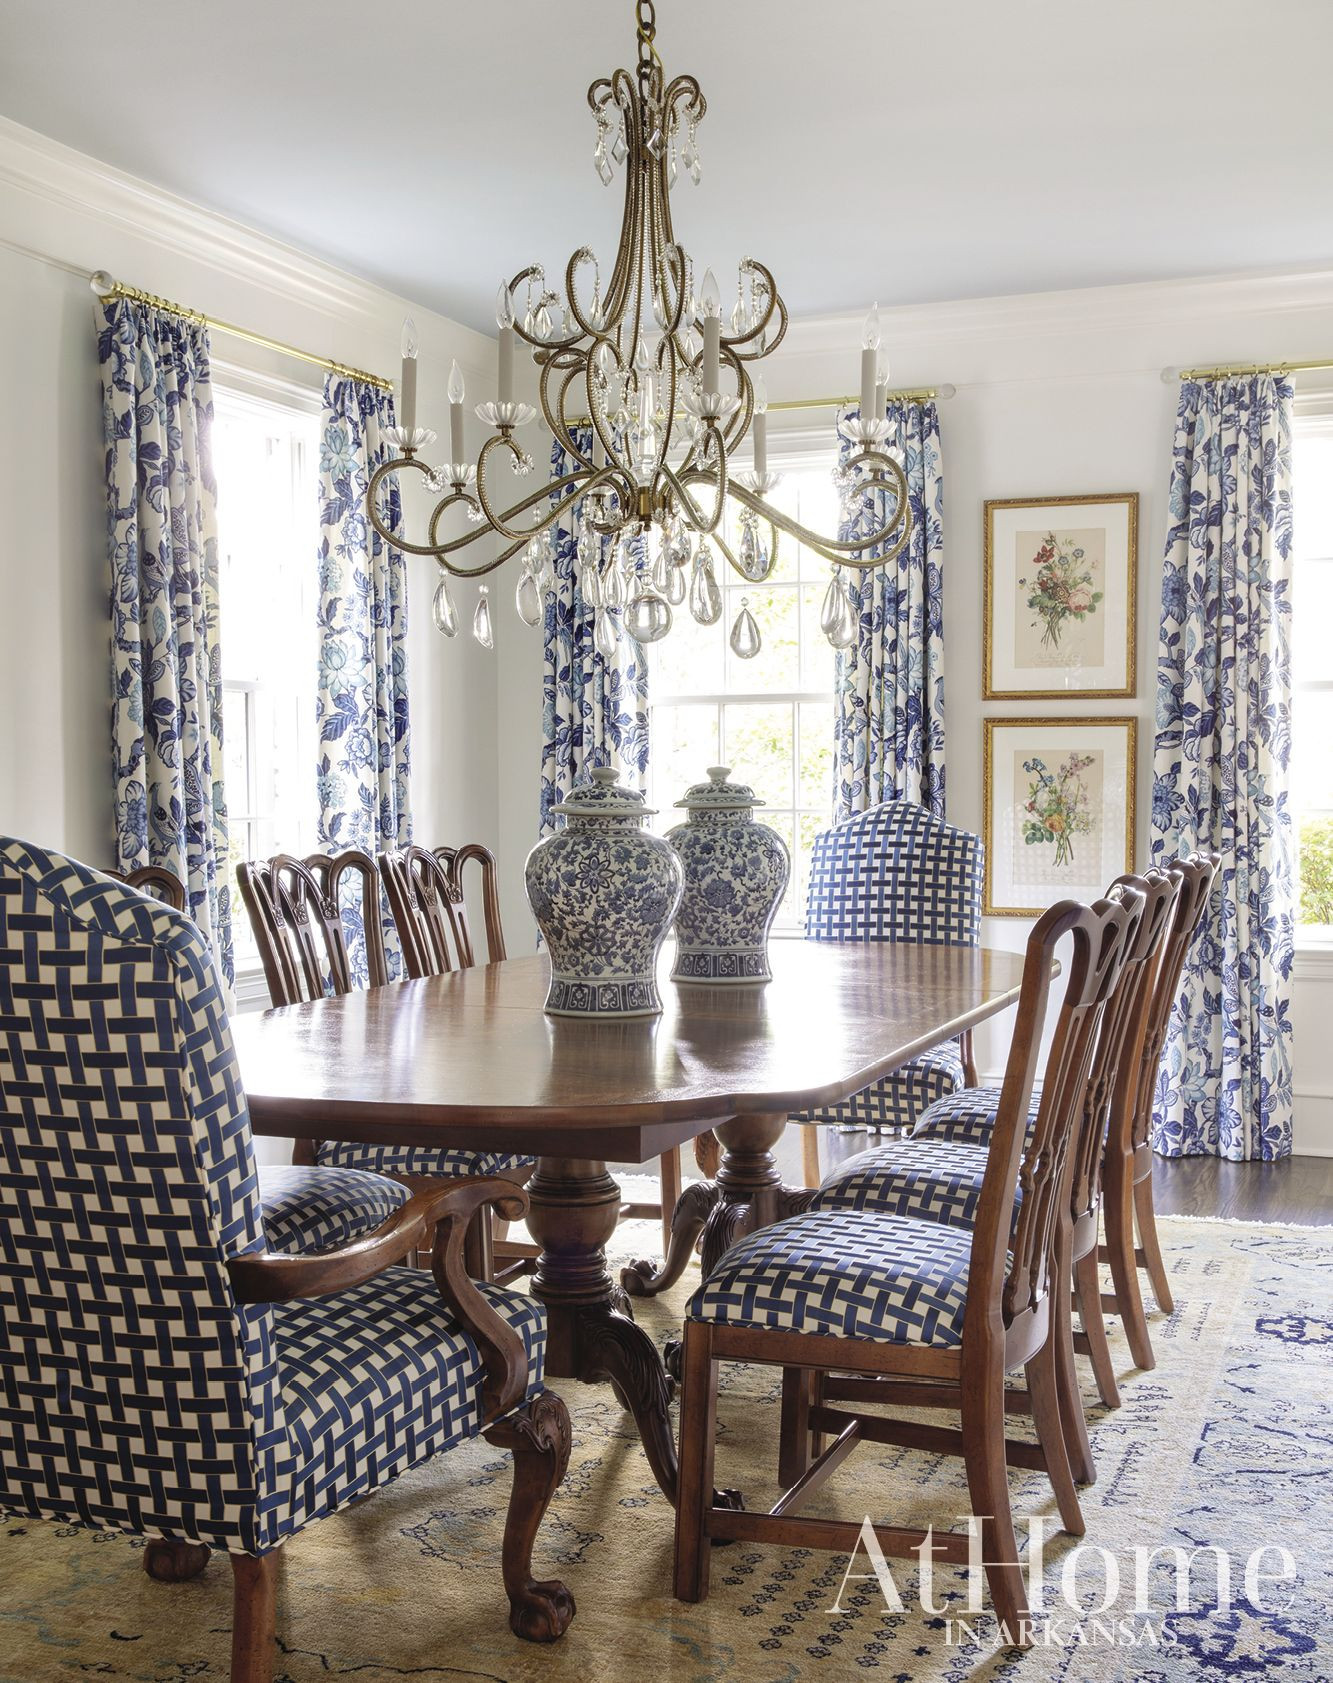 Traditional Transformed At Home In Arkansas Dining Room Decor Traditional Formal Dining Room Decor Traditional Dining Rooms